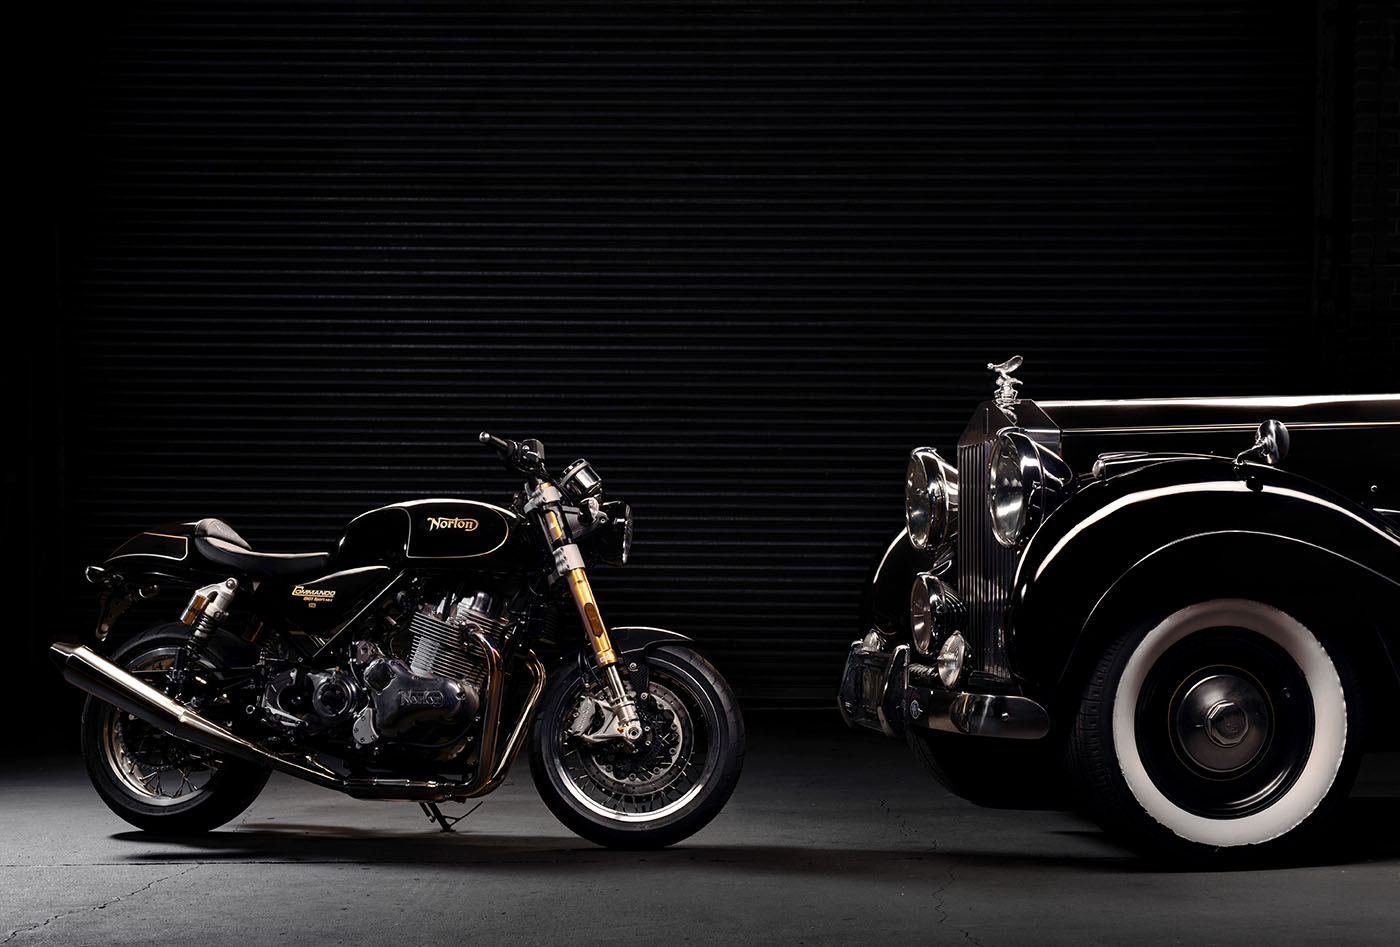 Norton Commando 961 and Rolls Royce Silver Wraith